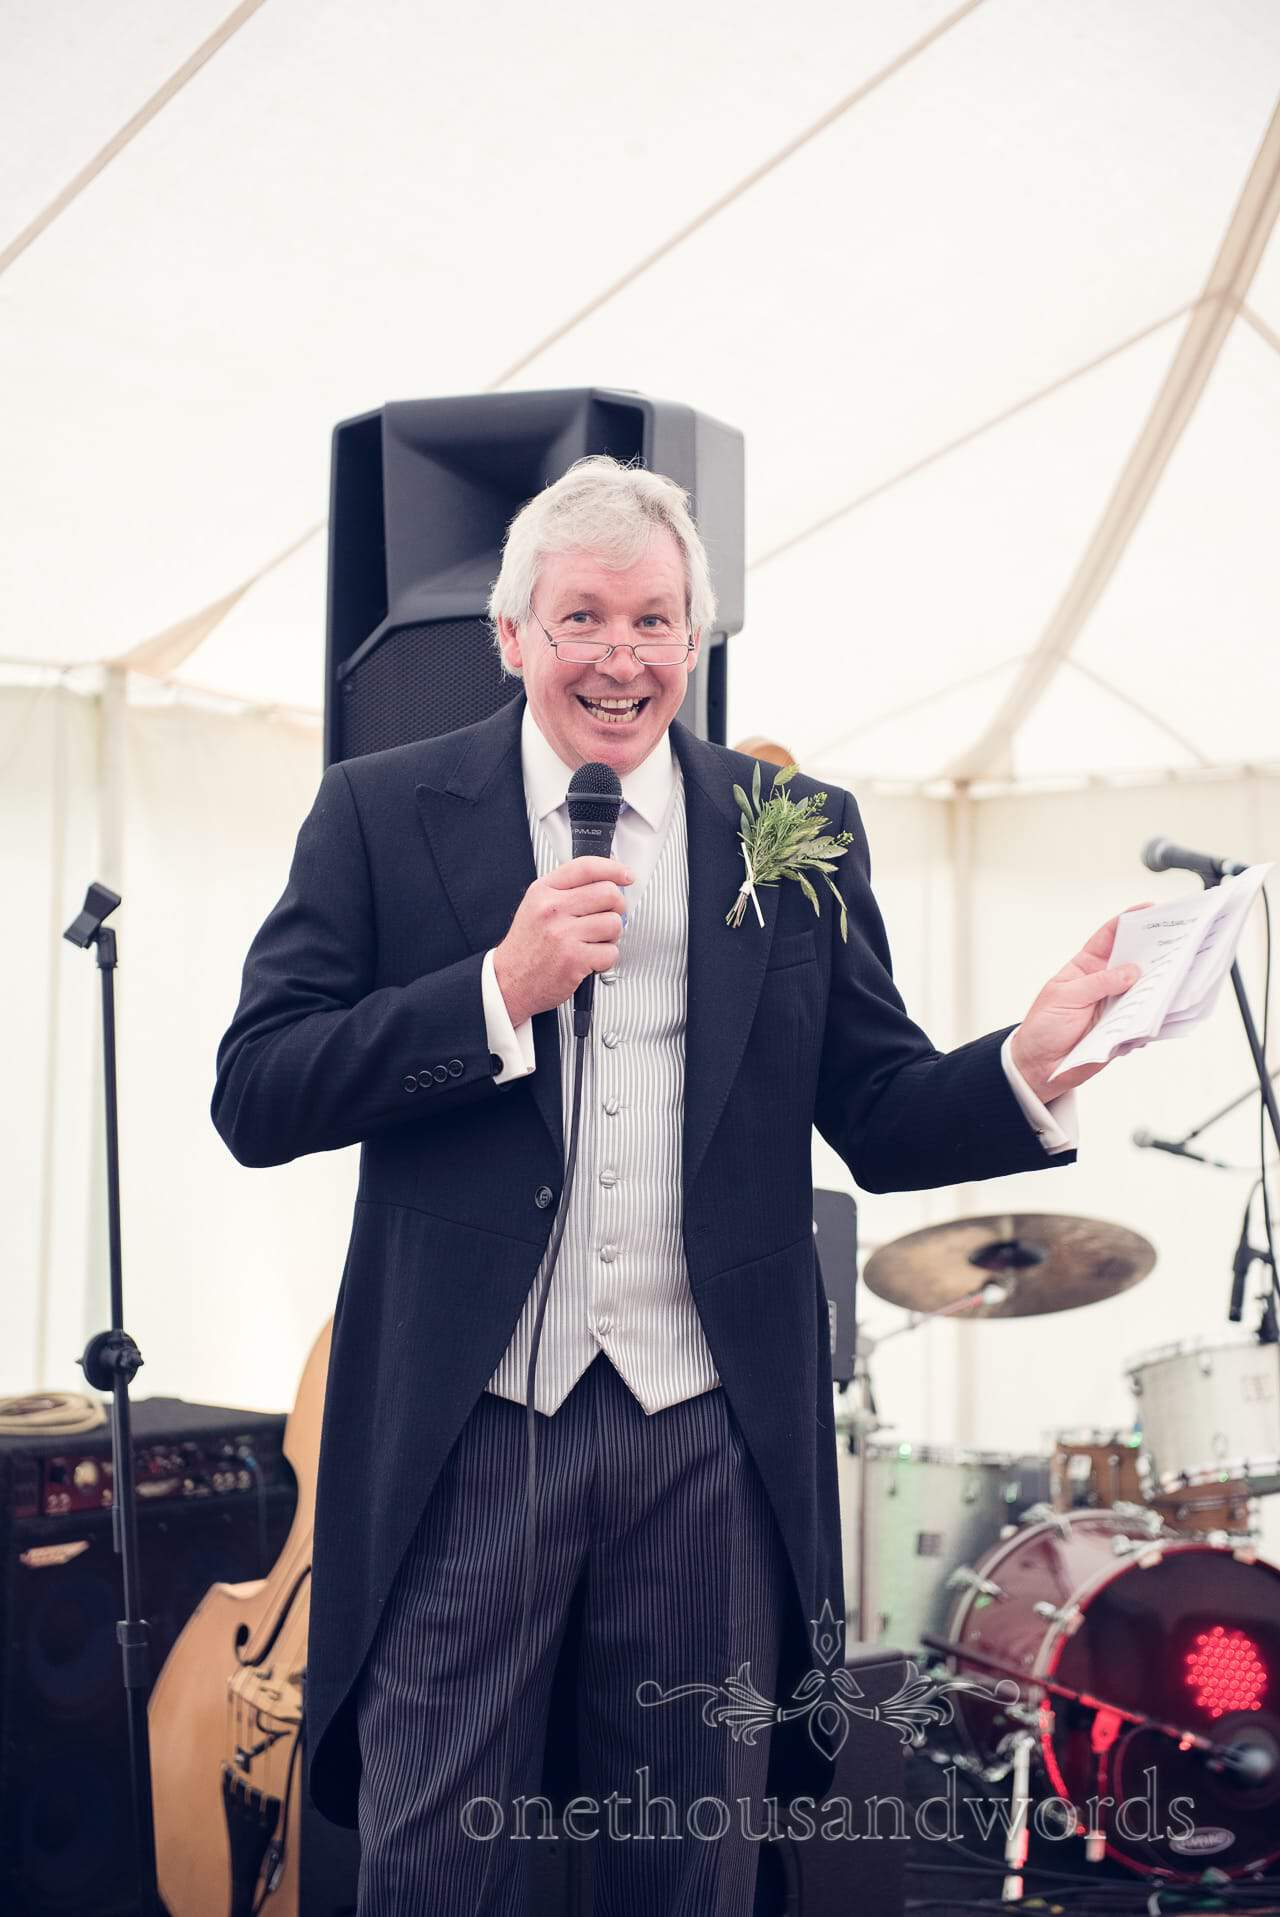 Father of the bride speech in wedding marquee